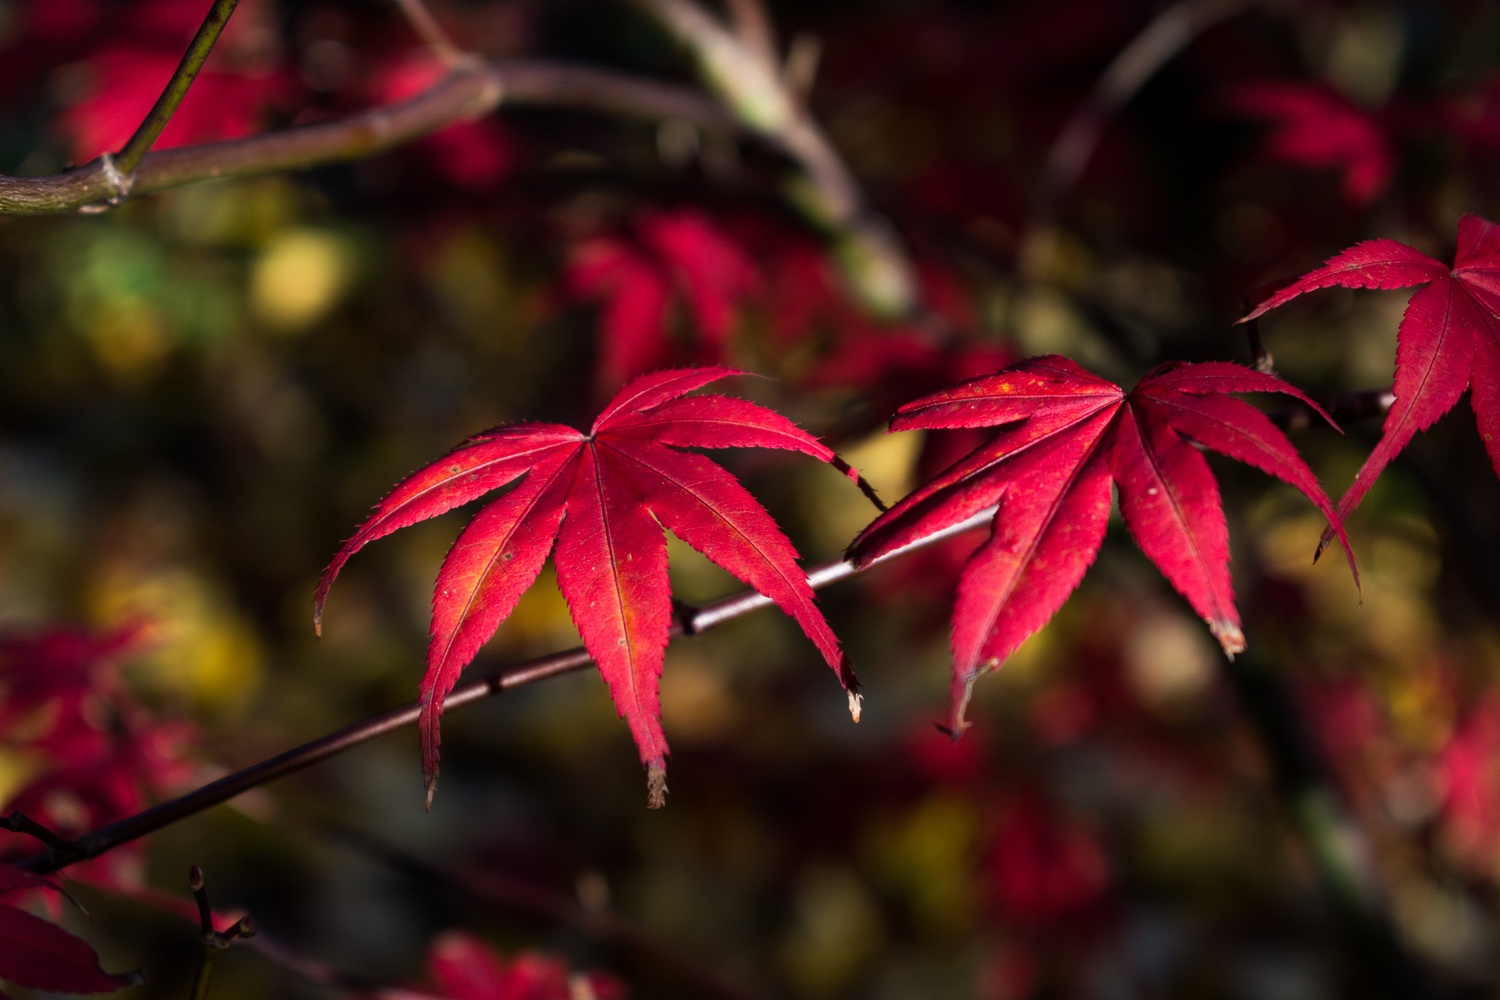 Autumn leaves by Ties Firet